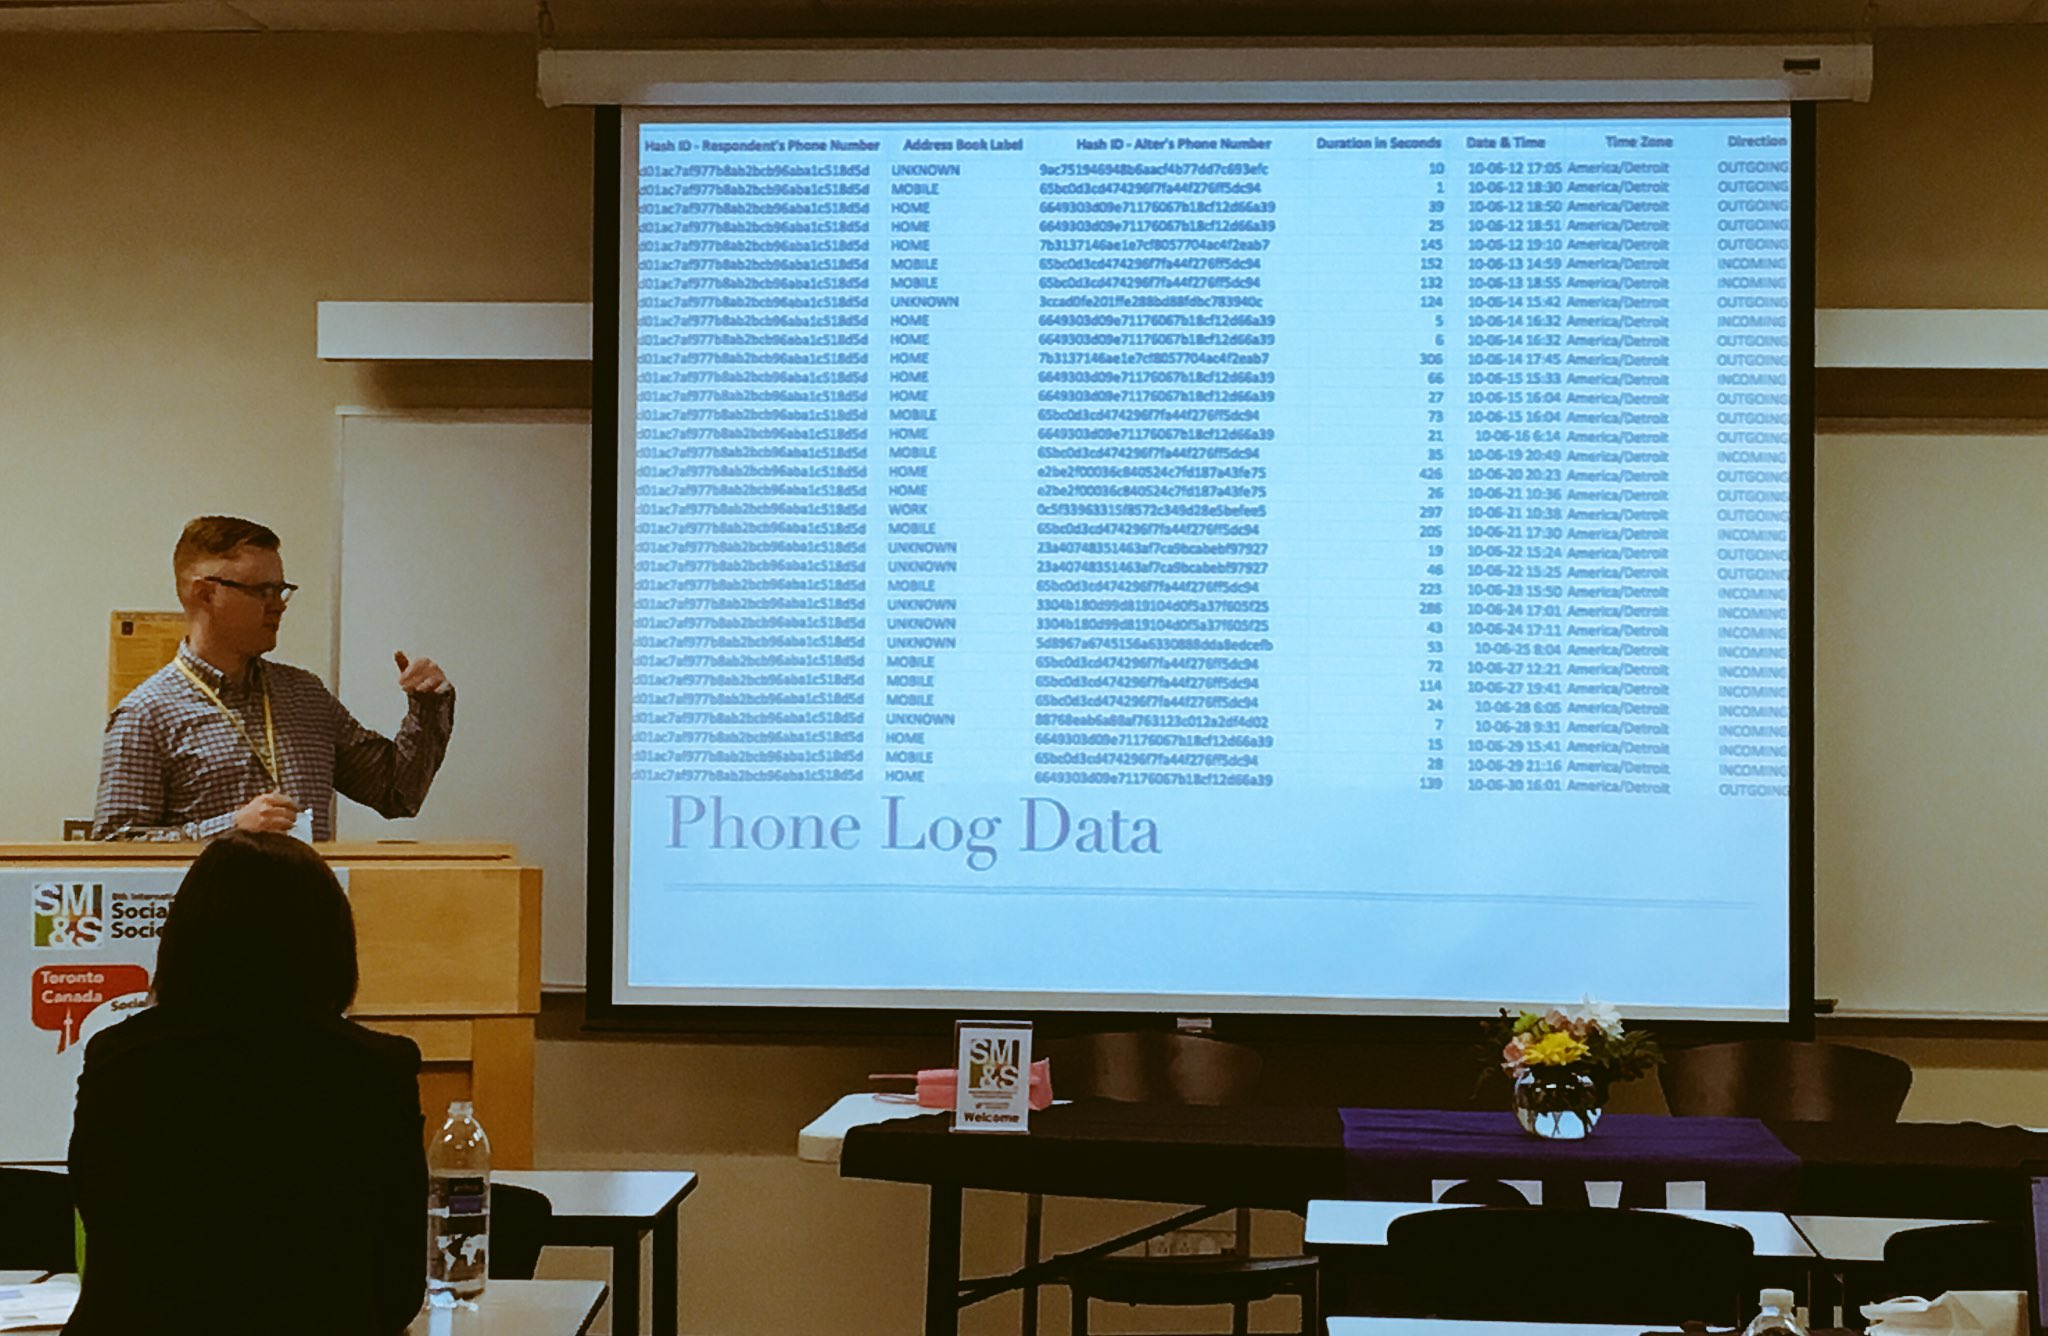 Tracing social relationships through mobile connections w/ Jeffrey Boase got me like 📲🤔 #SMSociety https://t.co/tksZuCNnAi